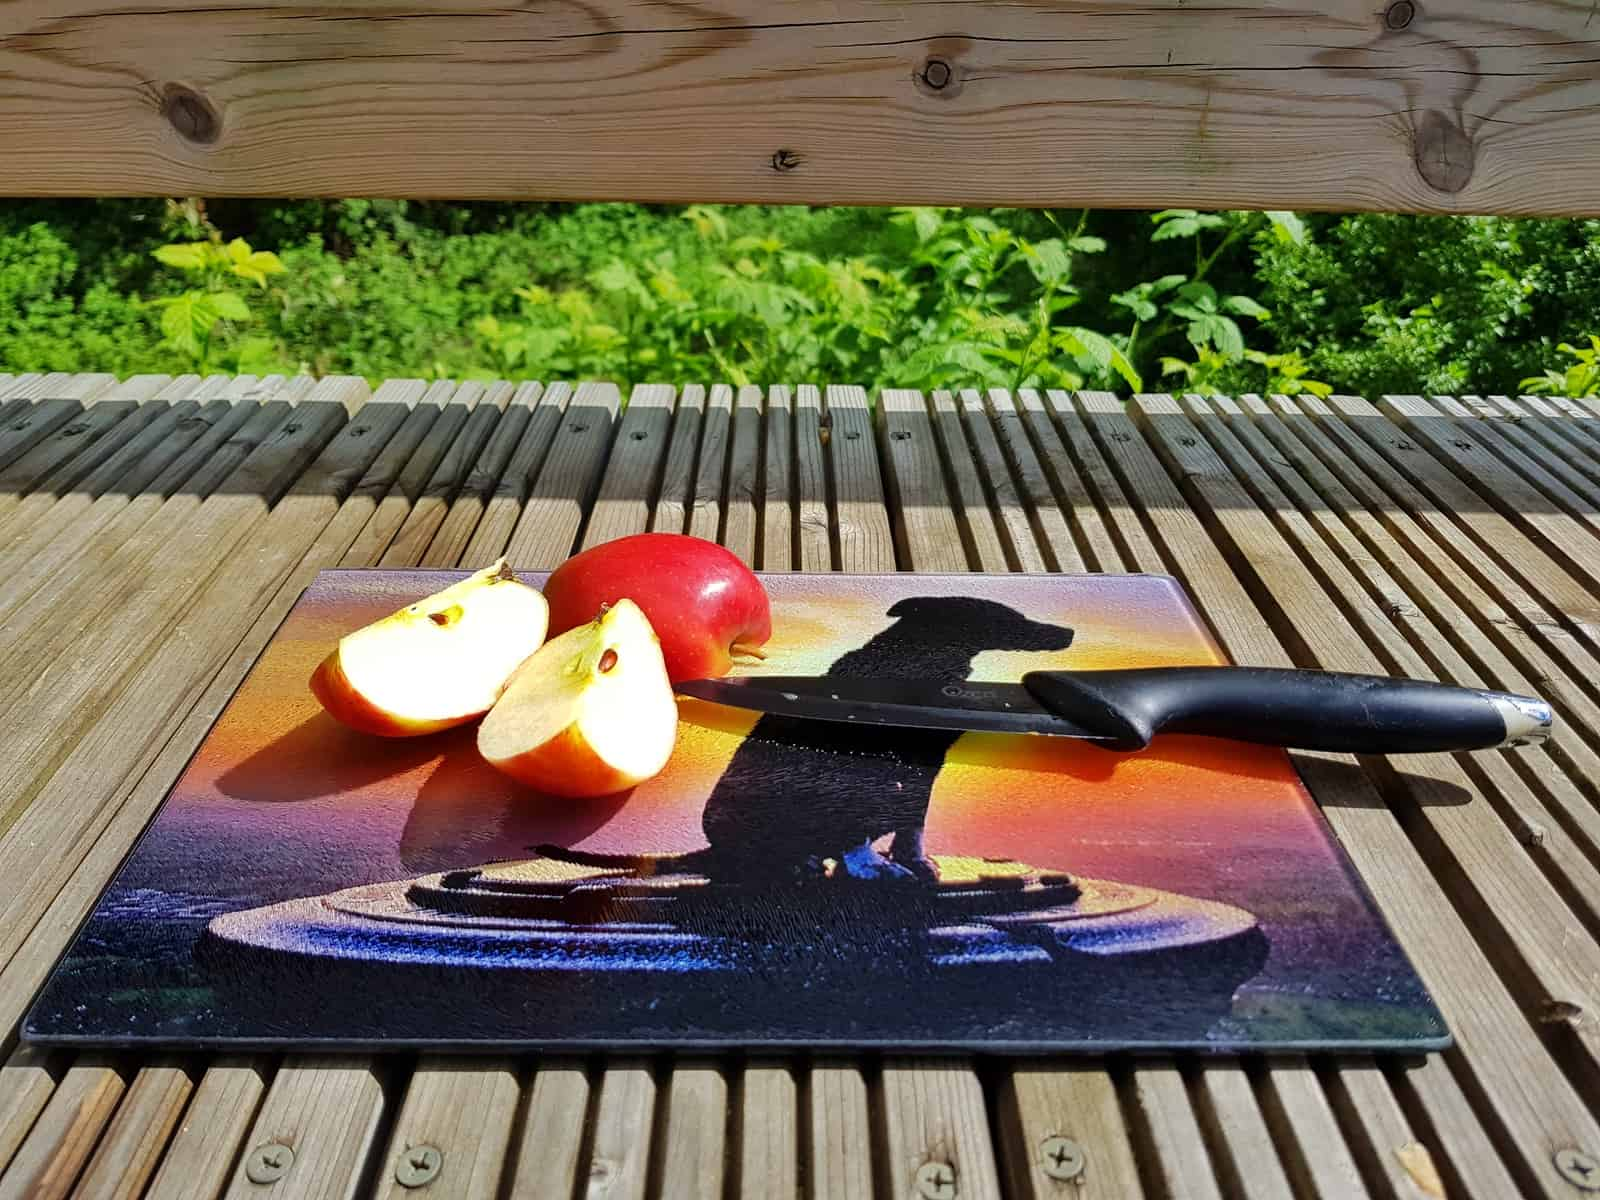 apple on chopping board with a photo of a dog against a sunset